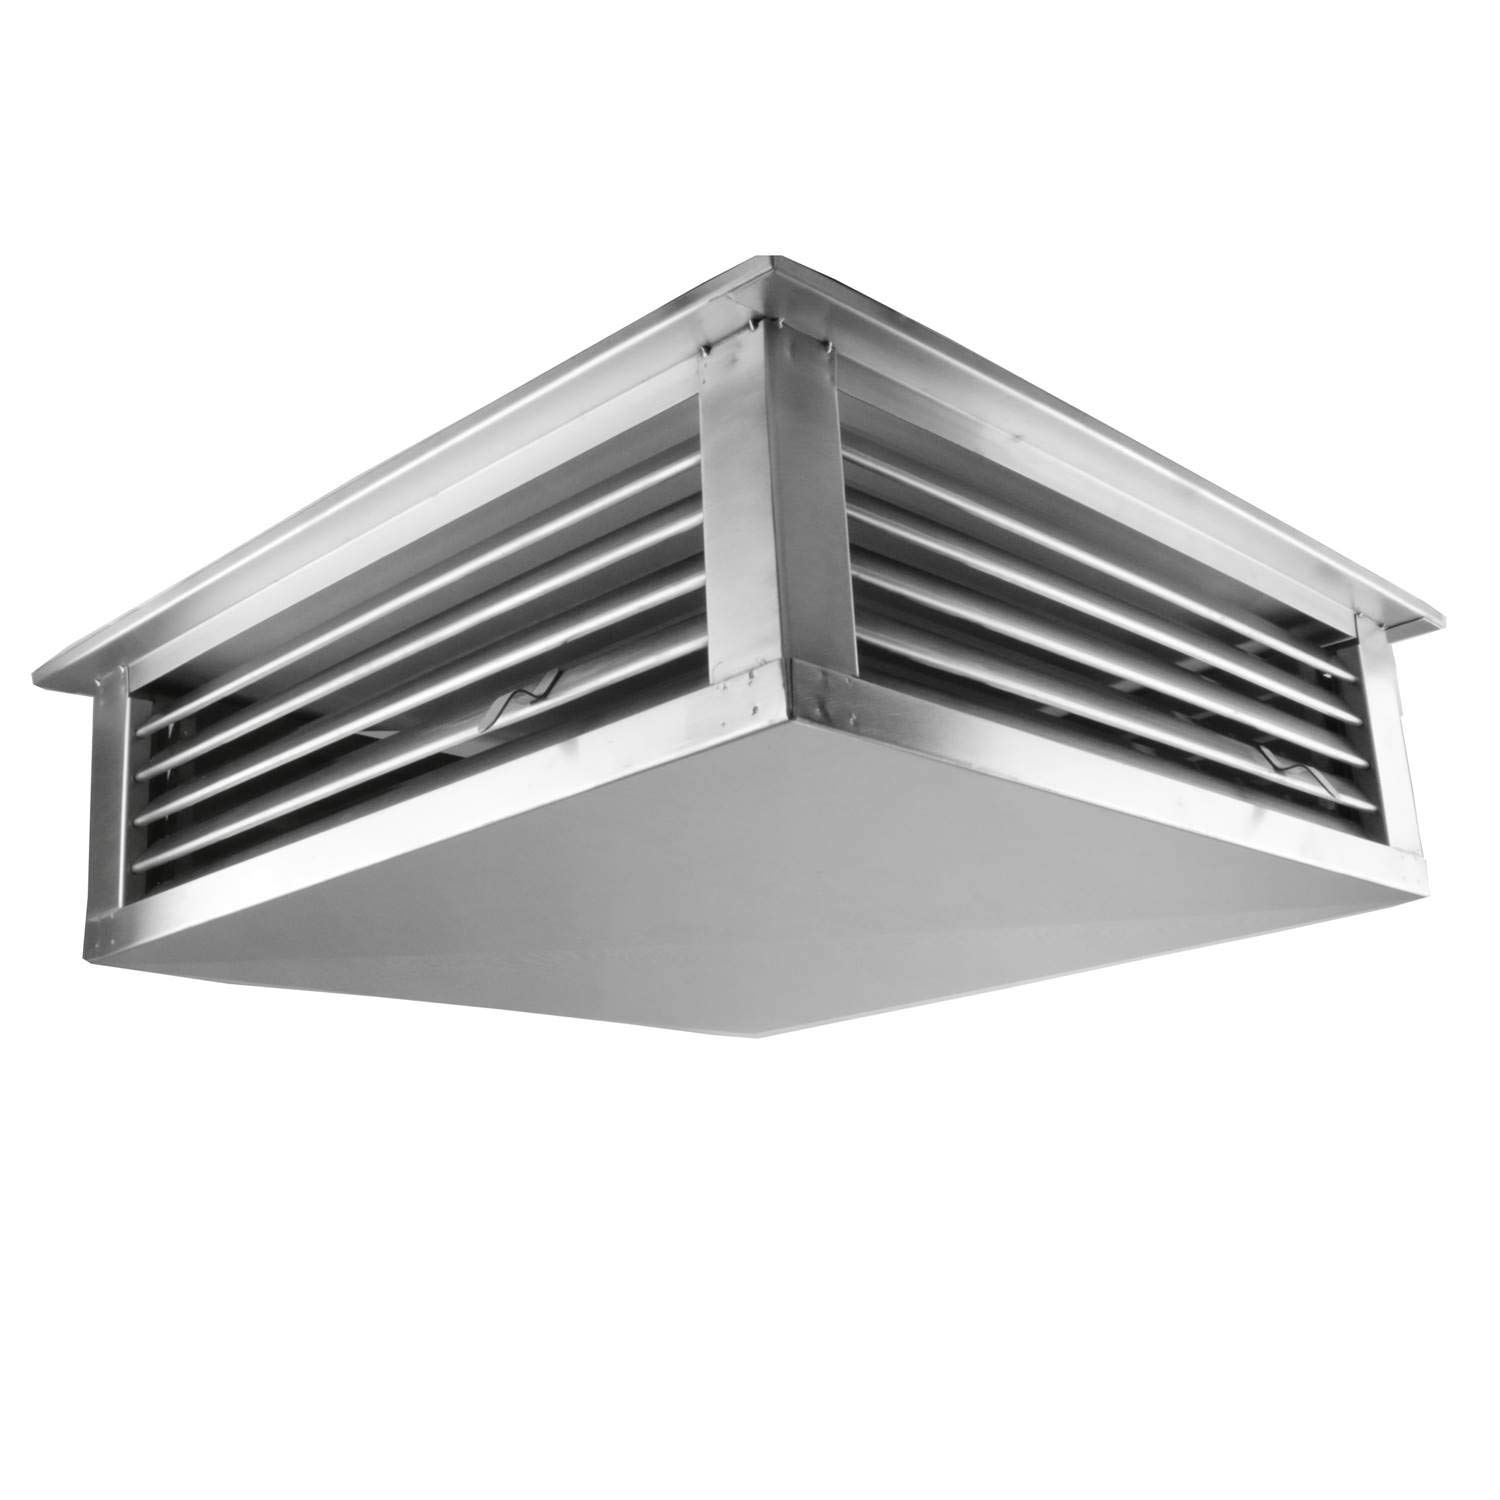 GSW DF-14S 14-Inch Stainless Steel 4-Way Adjustable Metal Diffuser for Evaporative/Swamp Cooler